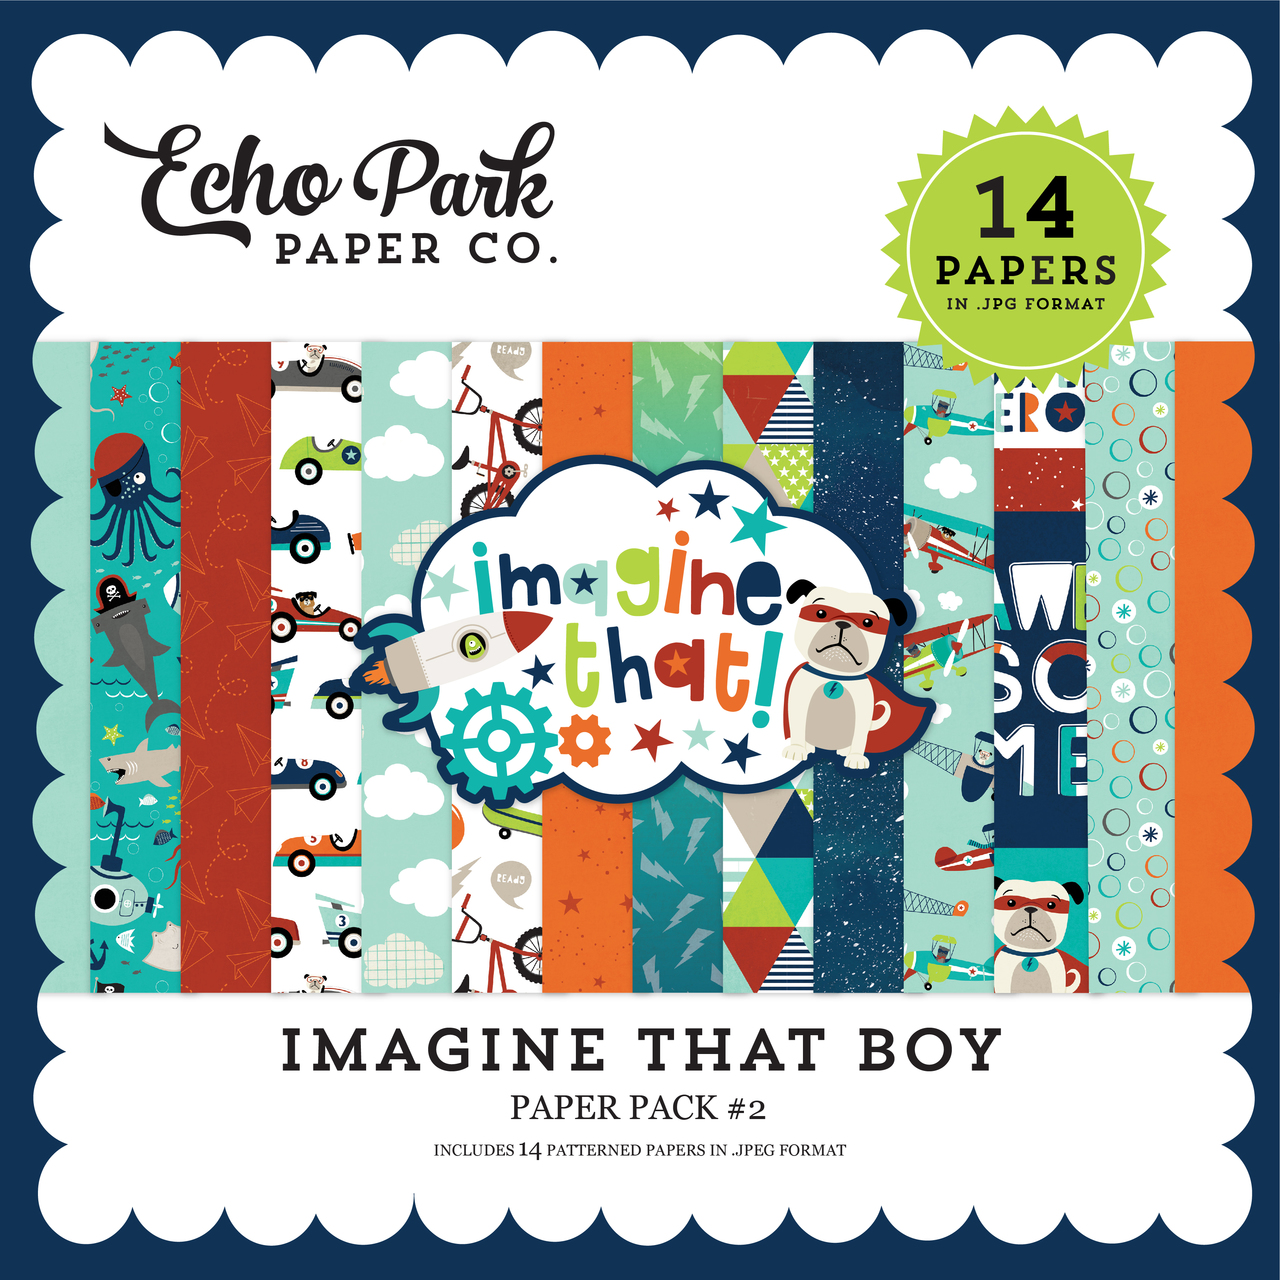 Imagine That Boy Paper Pack #2